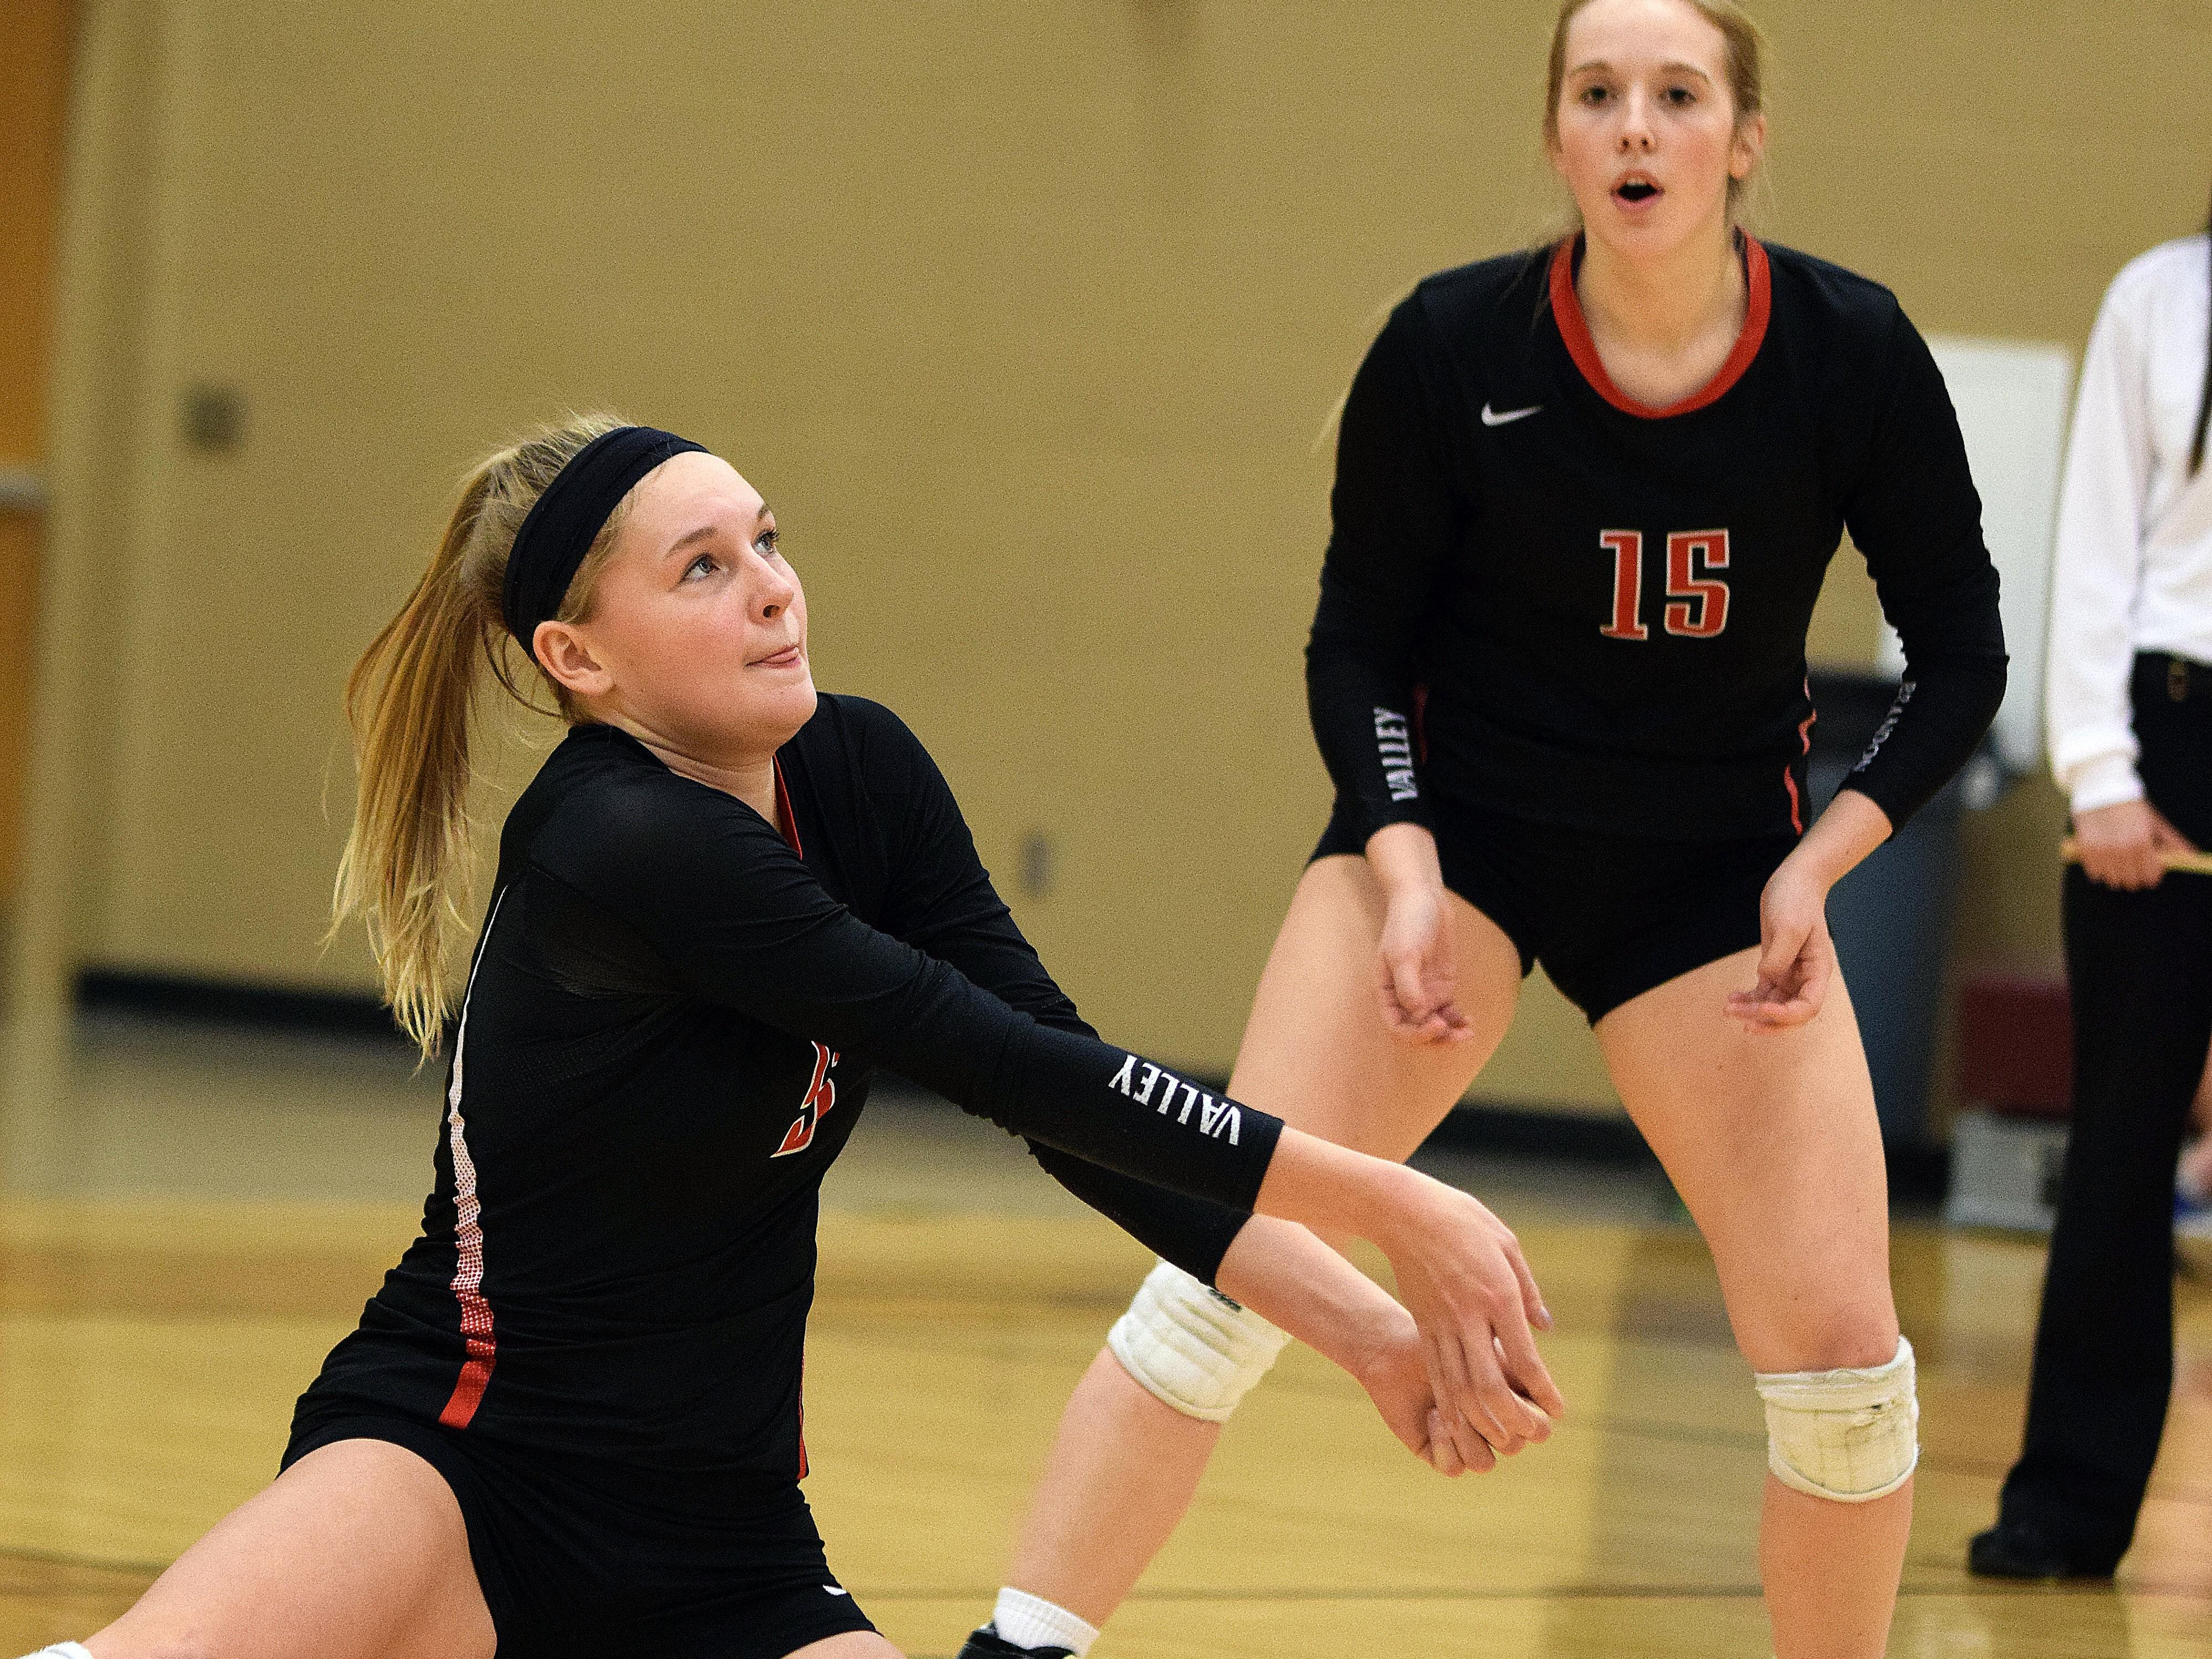 Hanna Jellema keeps the play alive Saturday night as teammate Brooke Etrheim looks on. Brandon Valley's 2016 volleyball season came to a close, as Harrisburg won the third-place District 2AA match by a 3-1 margin to advance in the post-season.